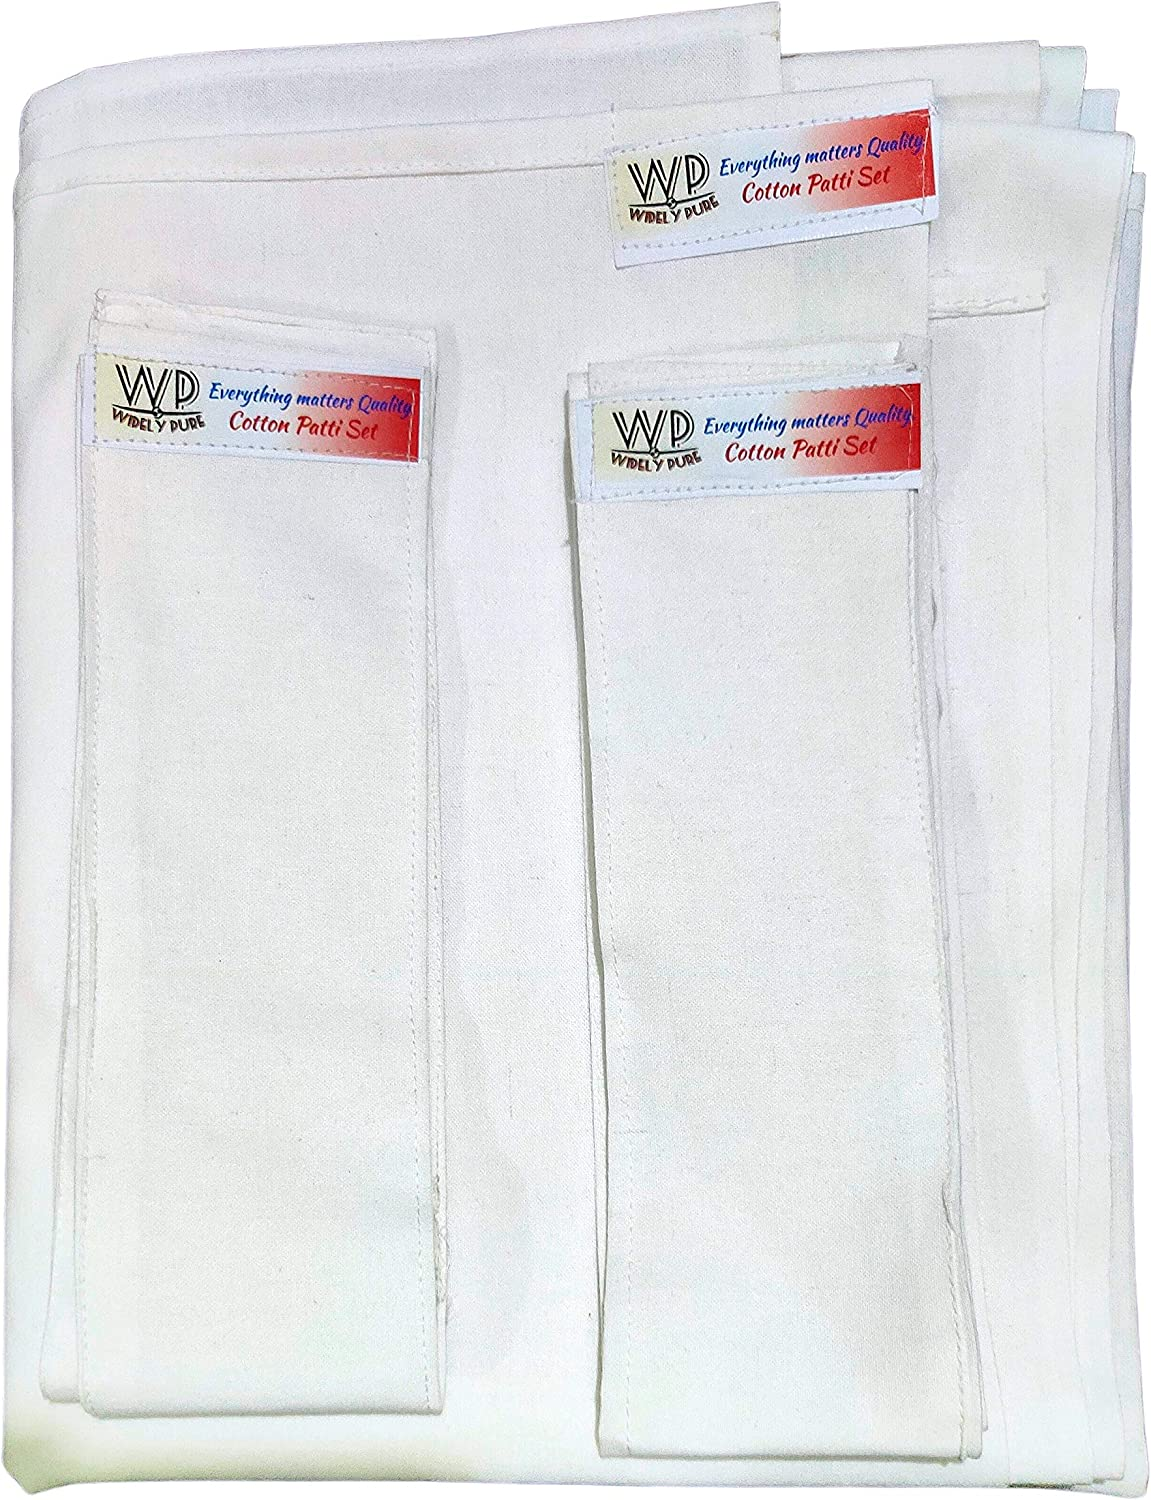 Widely Pure Natural wet pack cotton Patti for body detox head neck abdominal sattvic